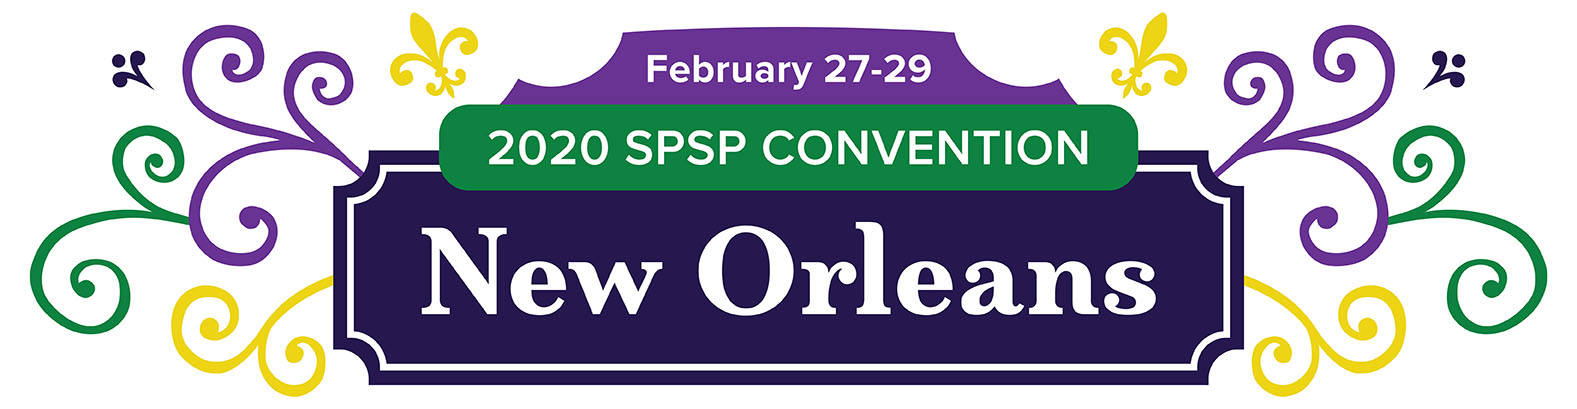 2020 SPSP New Orleans Convention